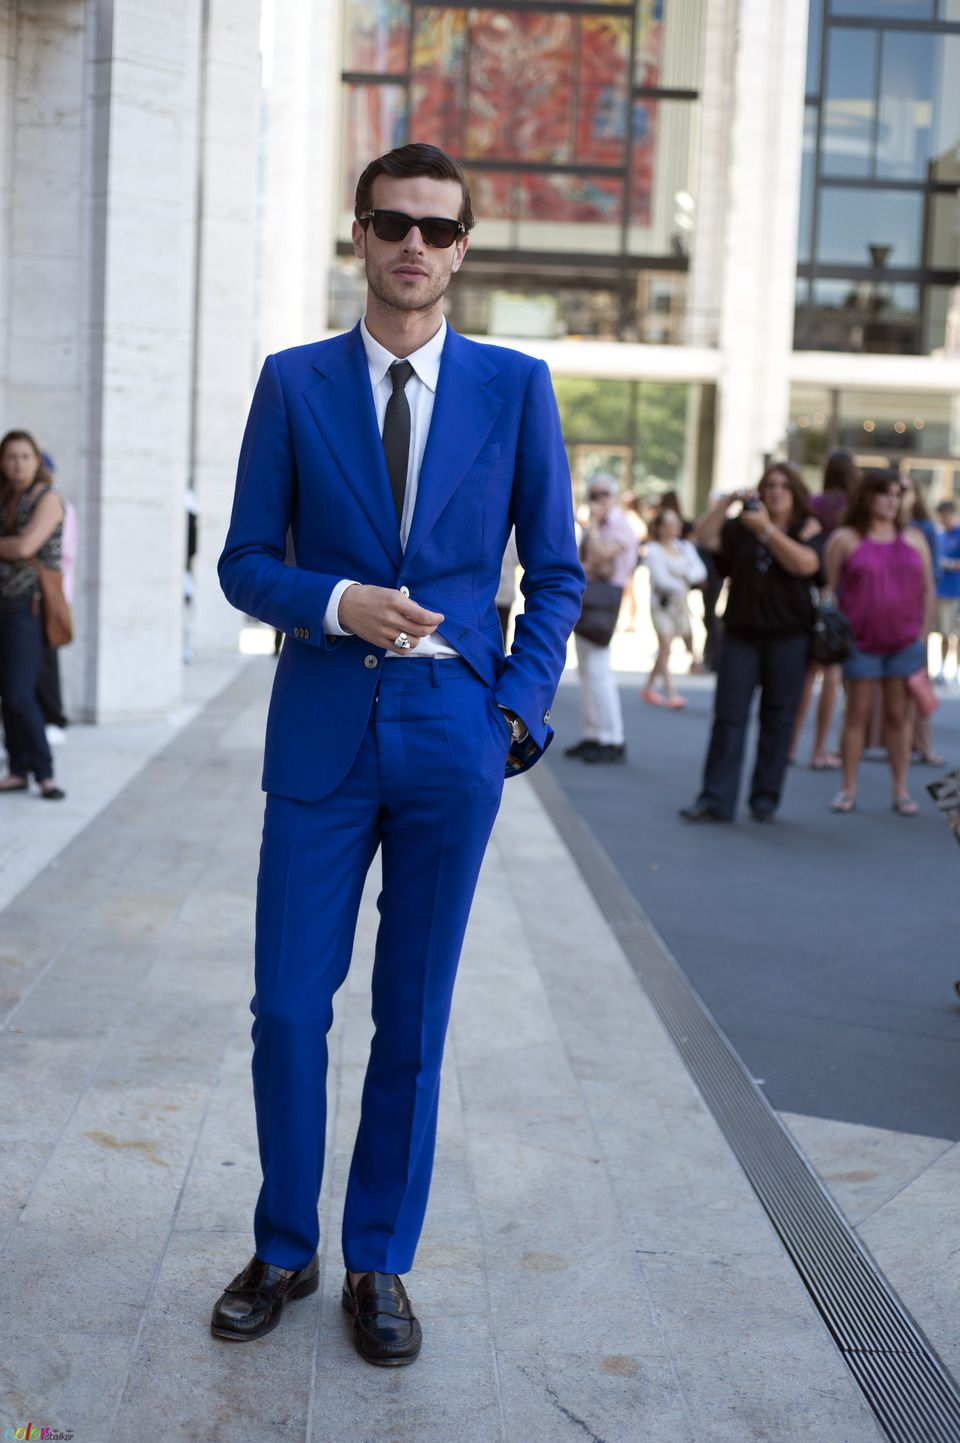 Pin by elise miller on style pinterest blue suit black tie and